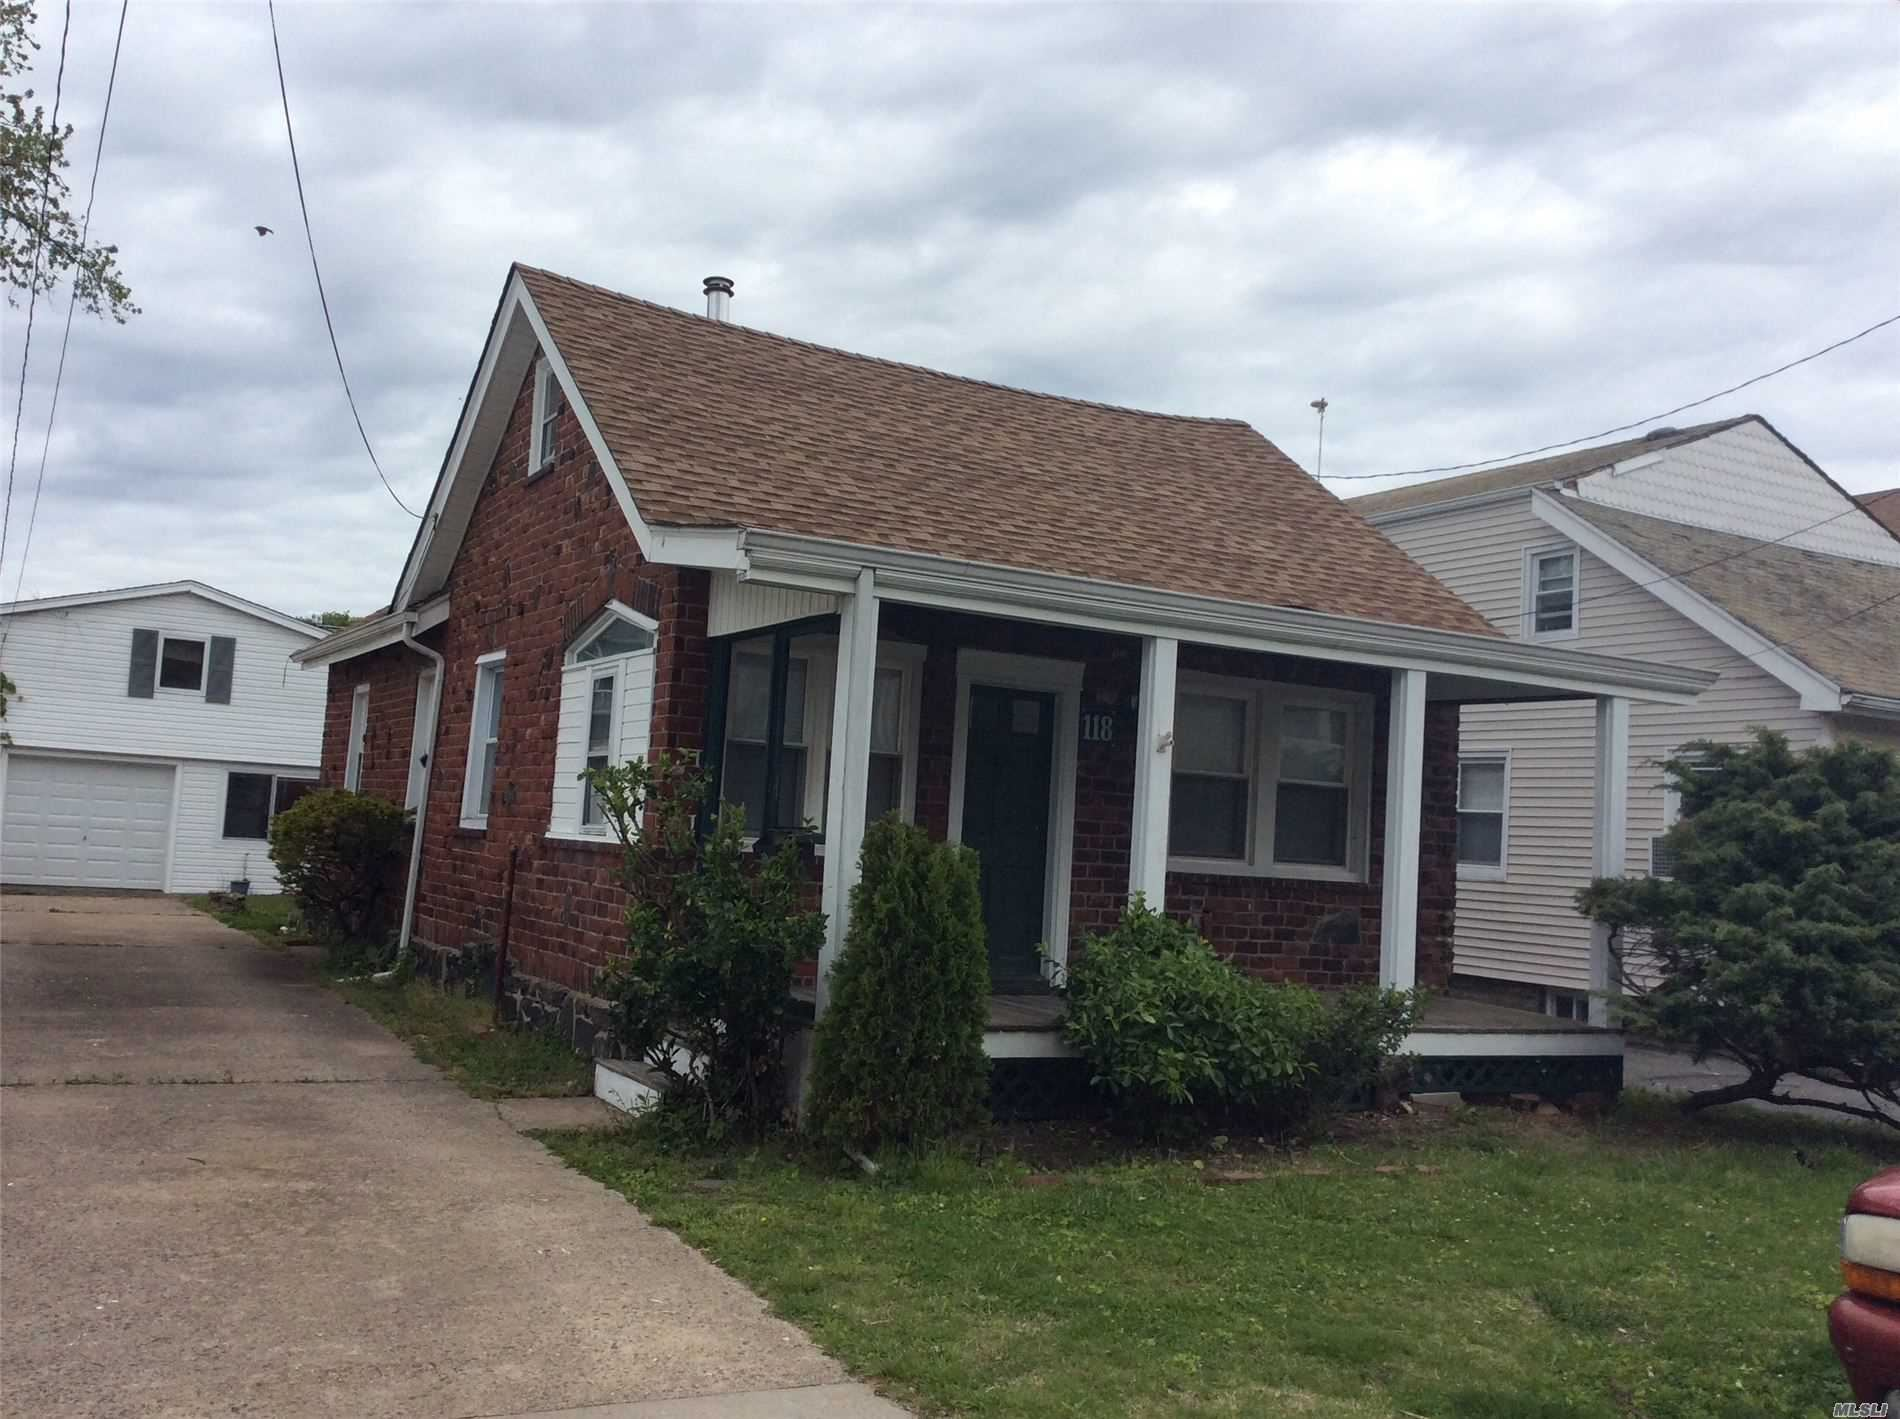 118 West Blvd, East Rockaway, NY 11518 - MLS#: 3216024